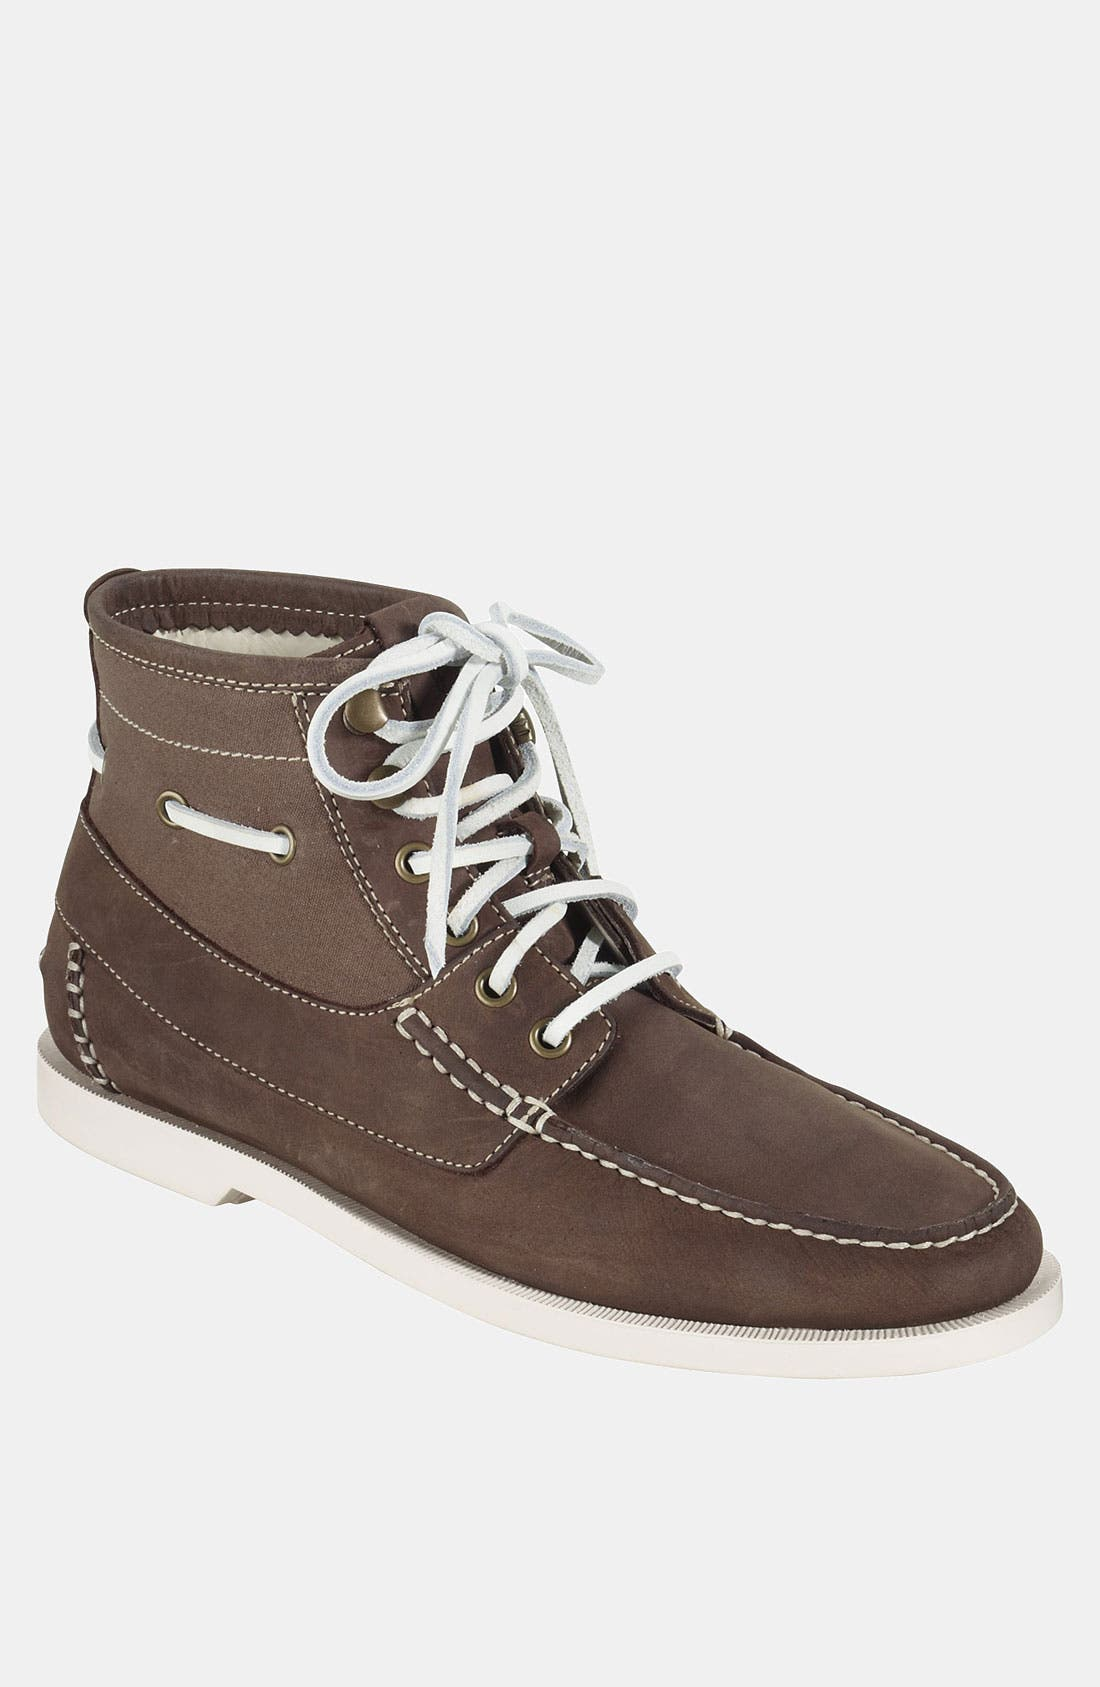 Main Image - Cole Haan 'Air Yacht Club' Lace-Up Boot